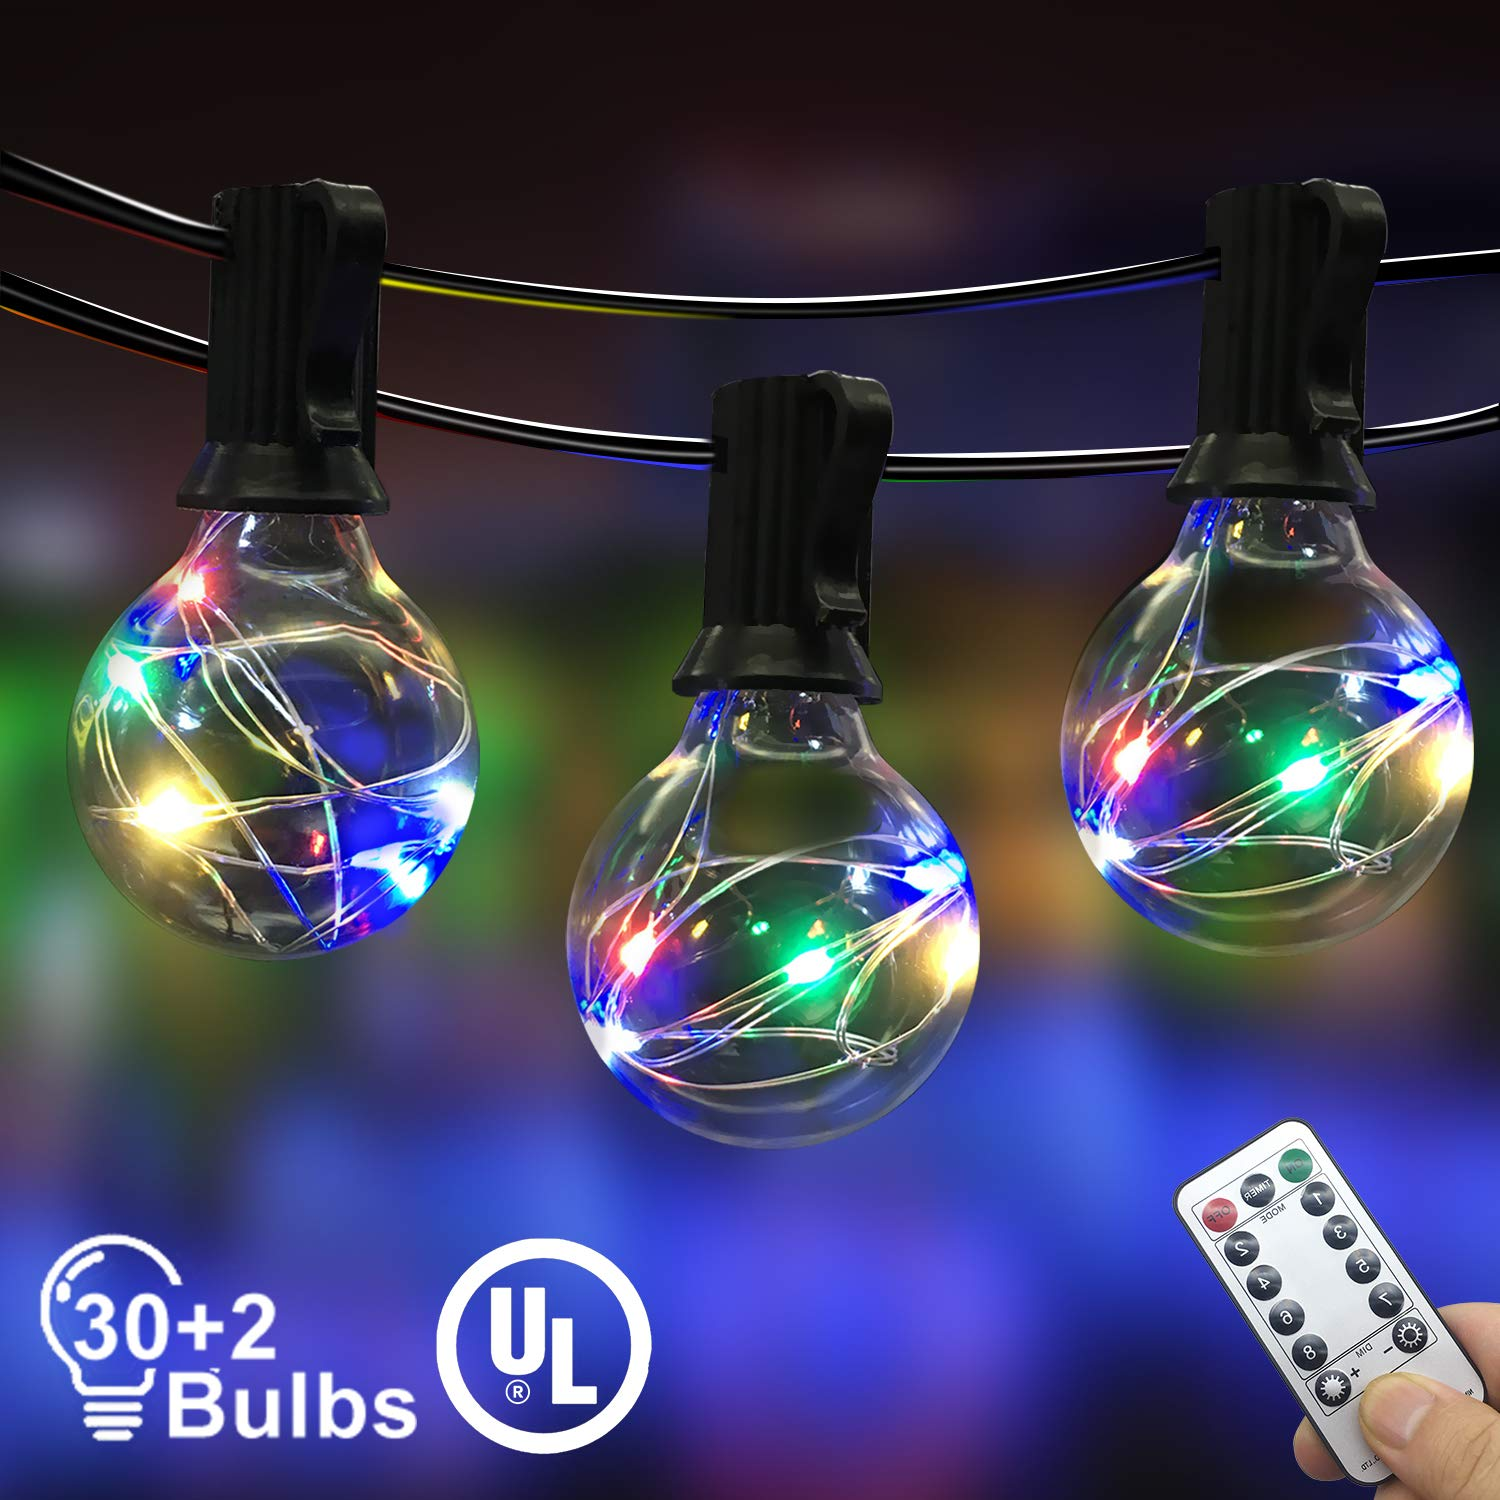 IELECMG Outdoor String Light, 32.8FT 30Pcs Linkable Patio Lights Dimmable G40 Globe Led String Lights with Remote Control UL Waterproof Backyard Lights for Bistro Garden Wedding Christmas Decoration by IELECMG